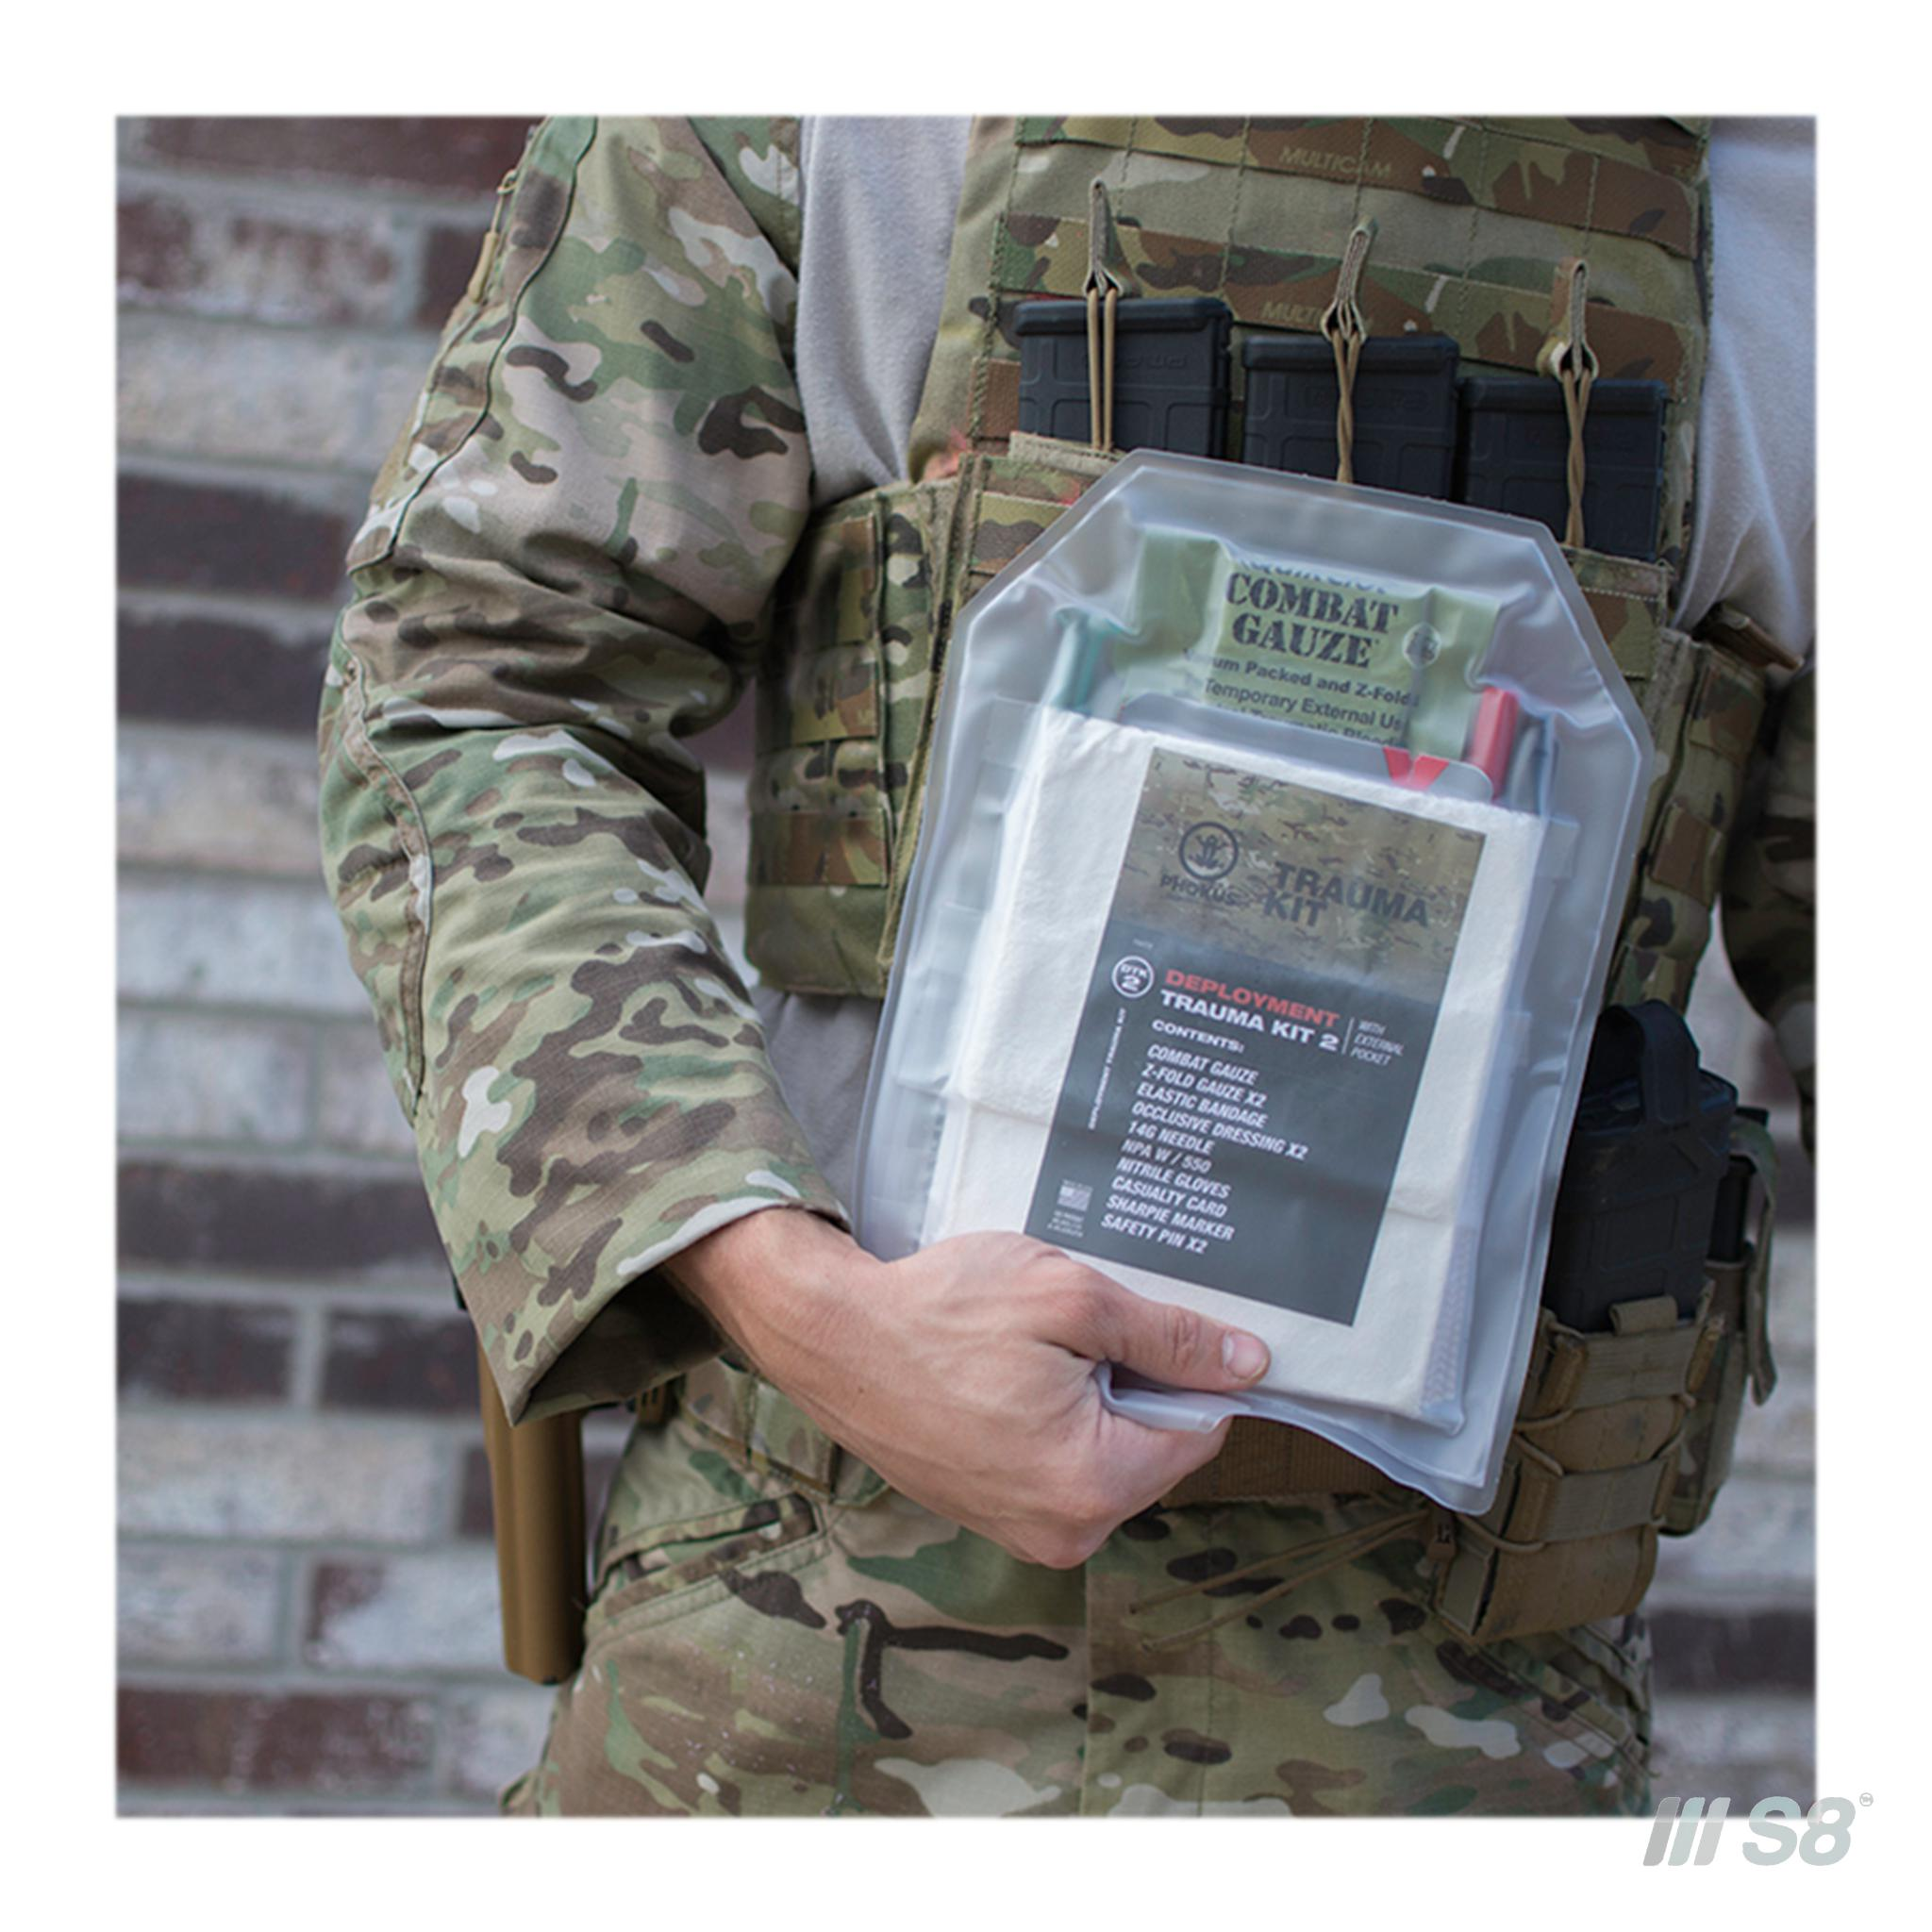 Phokus Research Group Deployment Trauma Kit 2-phokus-S8 Products Group